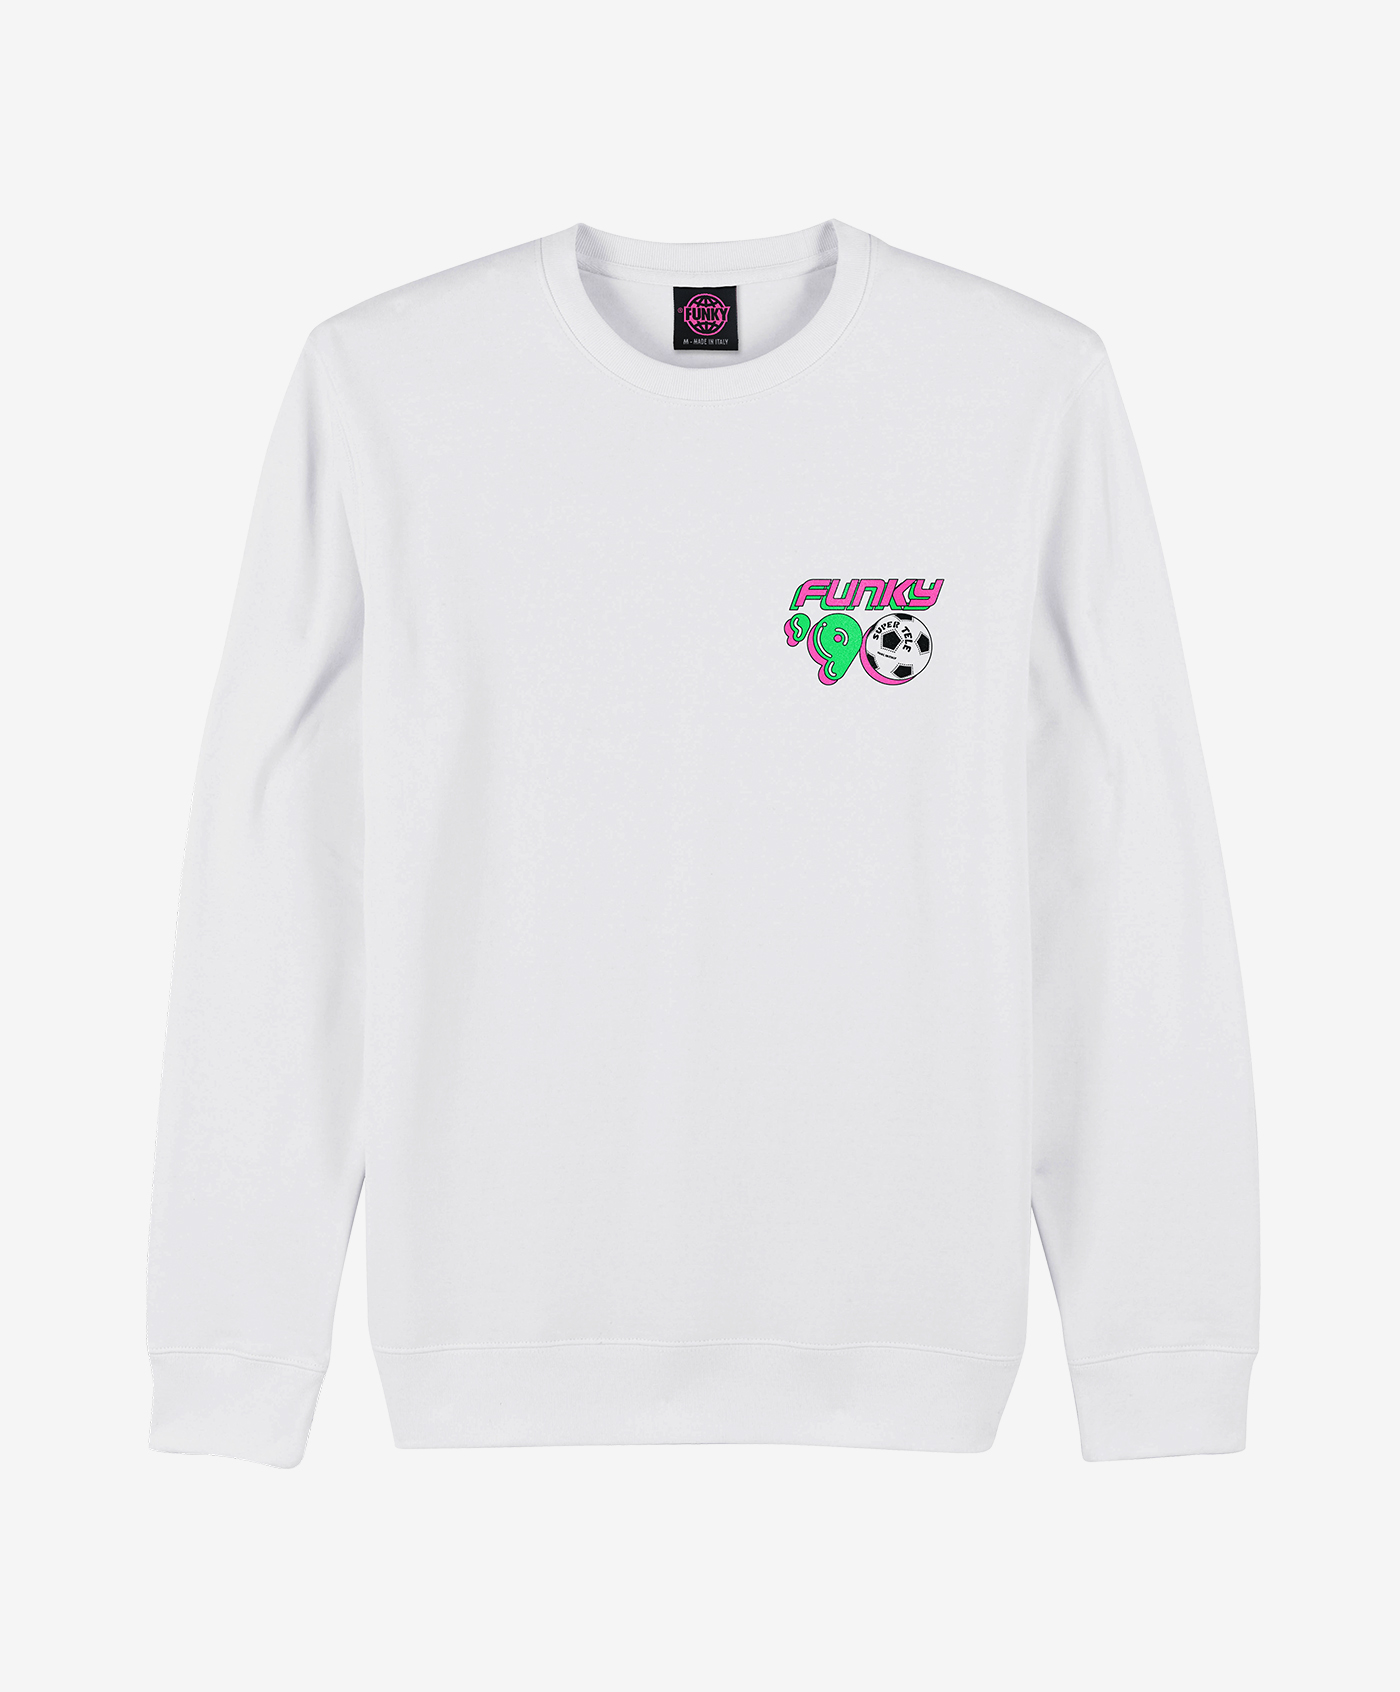 funky-90s-crewneck-white-front